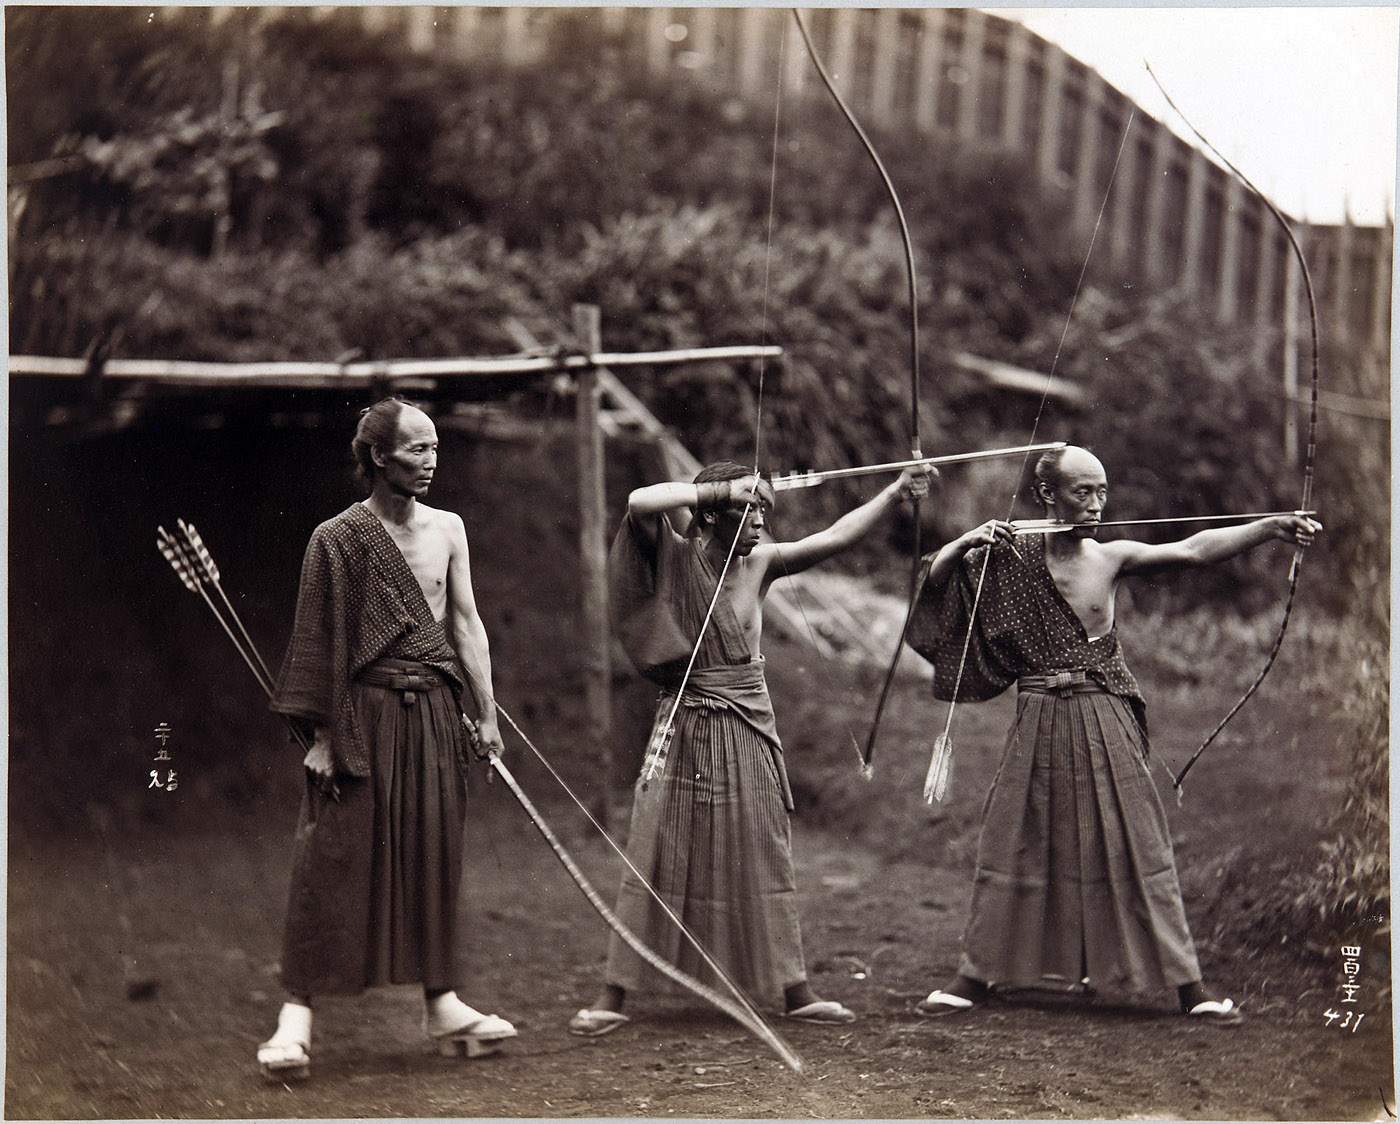 25 Breathtaking Photos From The Past - Three archers, Japan, ca.1860-1900